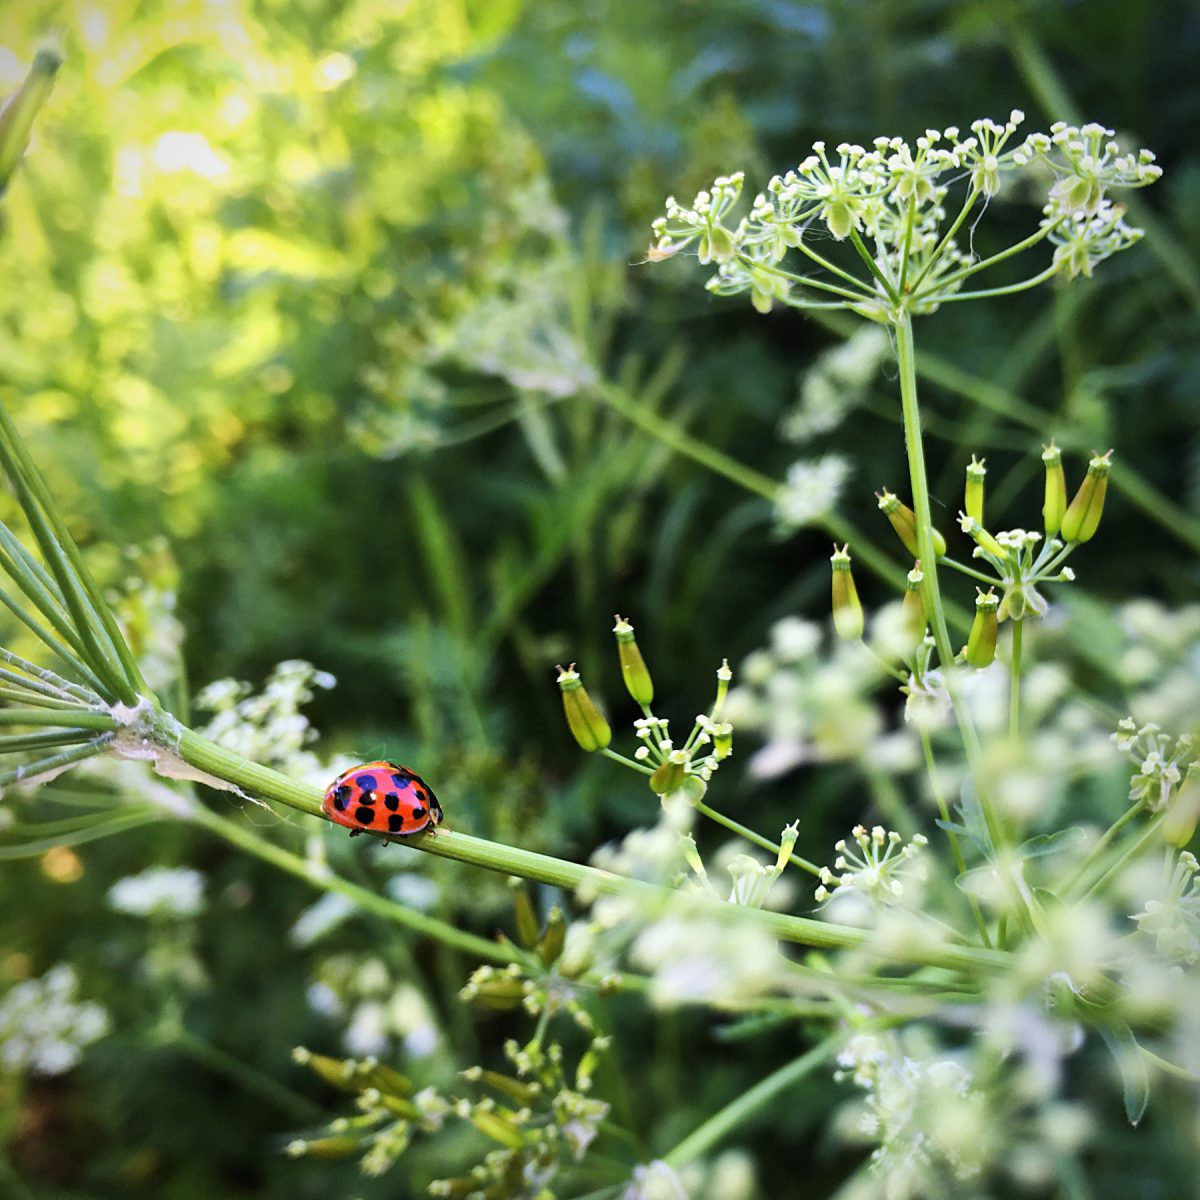 A ladybug walking along a narrow bridge of Queen Anne's lace